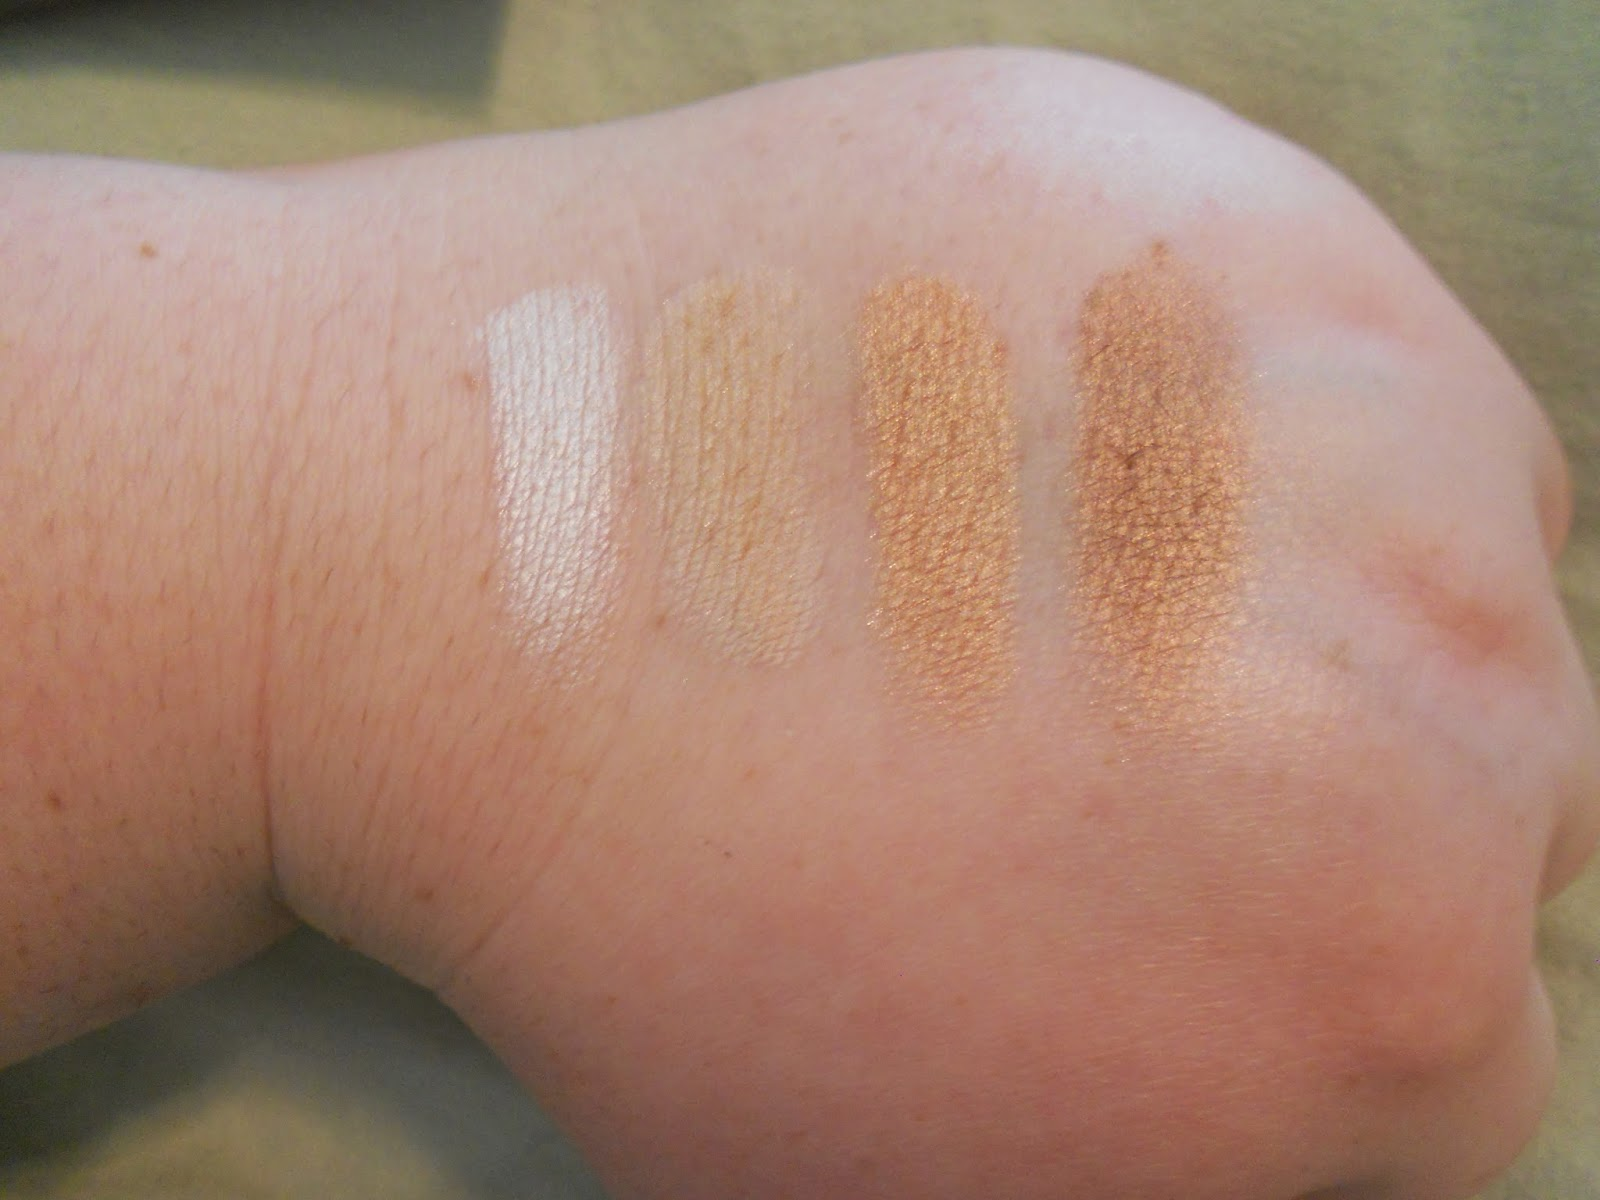 Lorac PRO Palette 2 Swatches - Snow, Beige, Rosé and Mocha